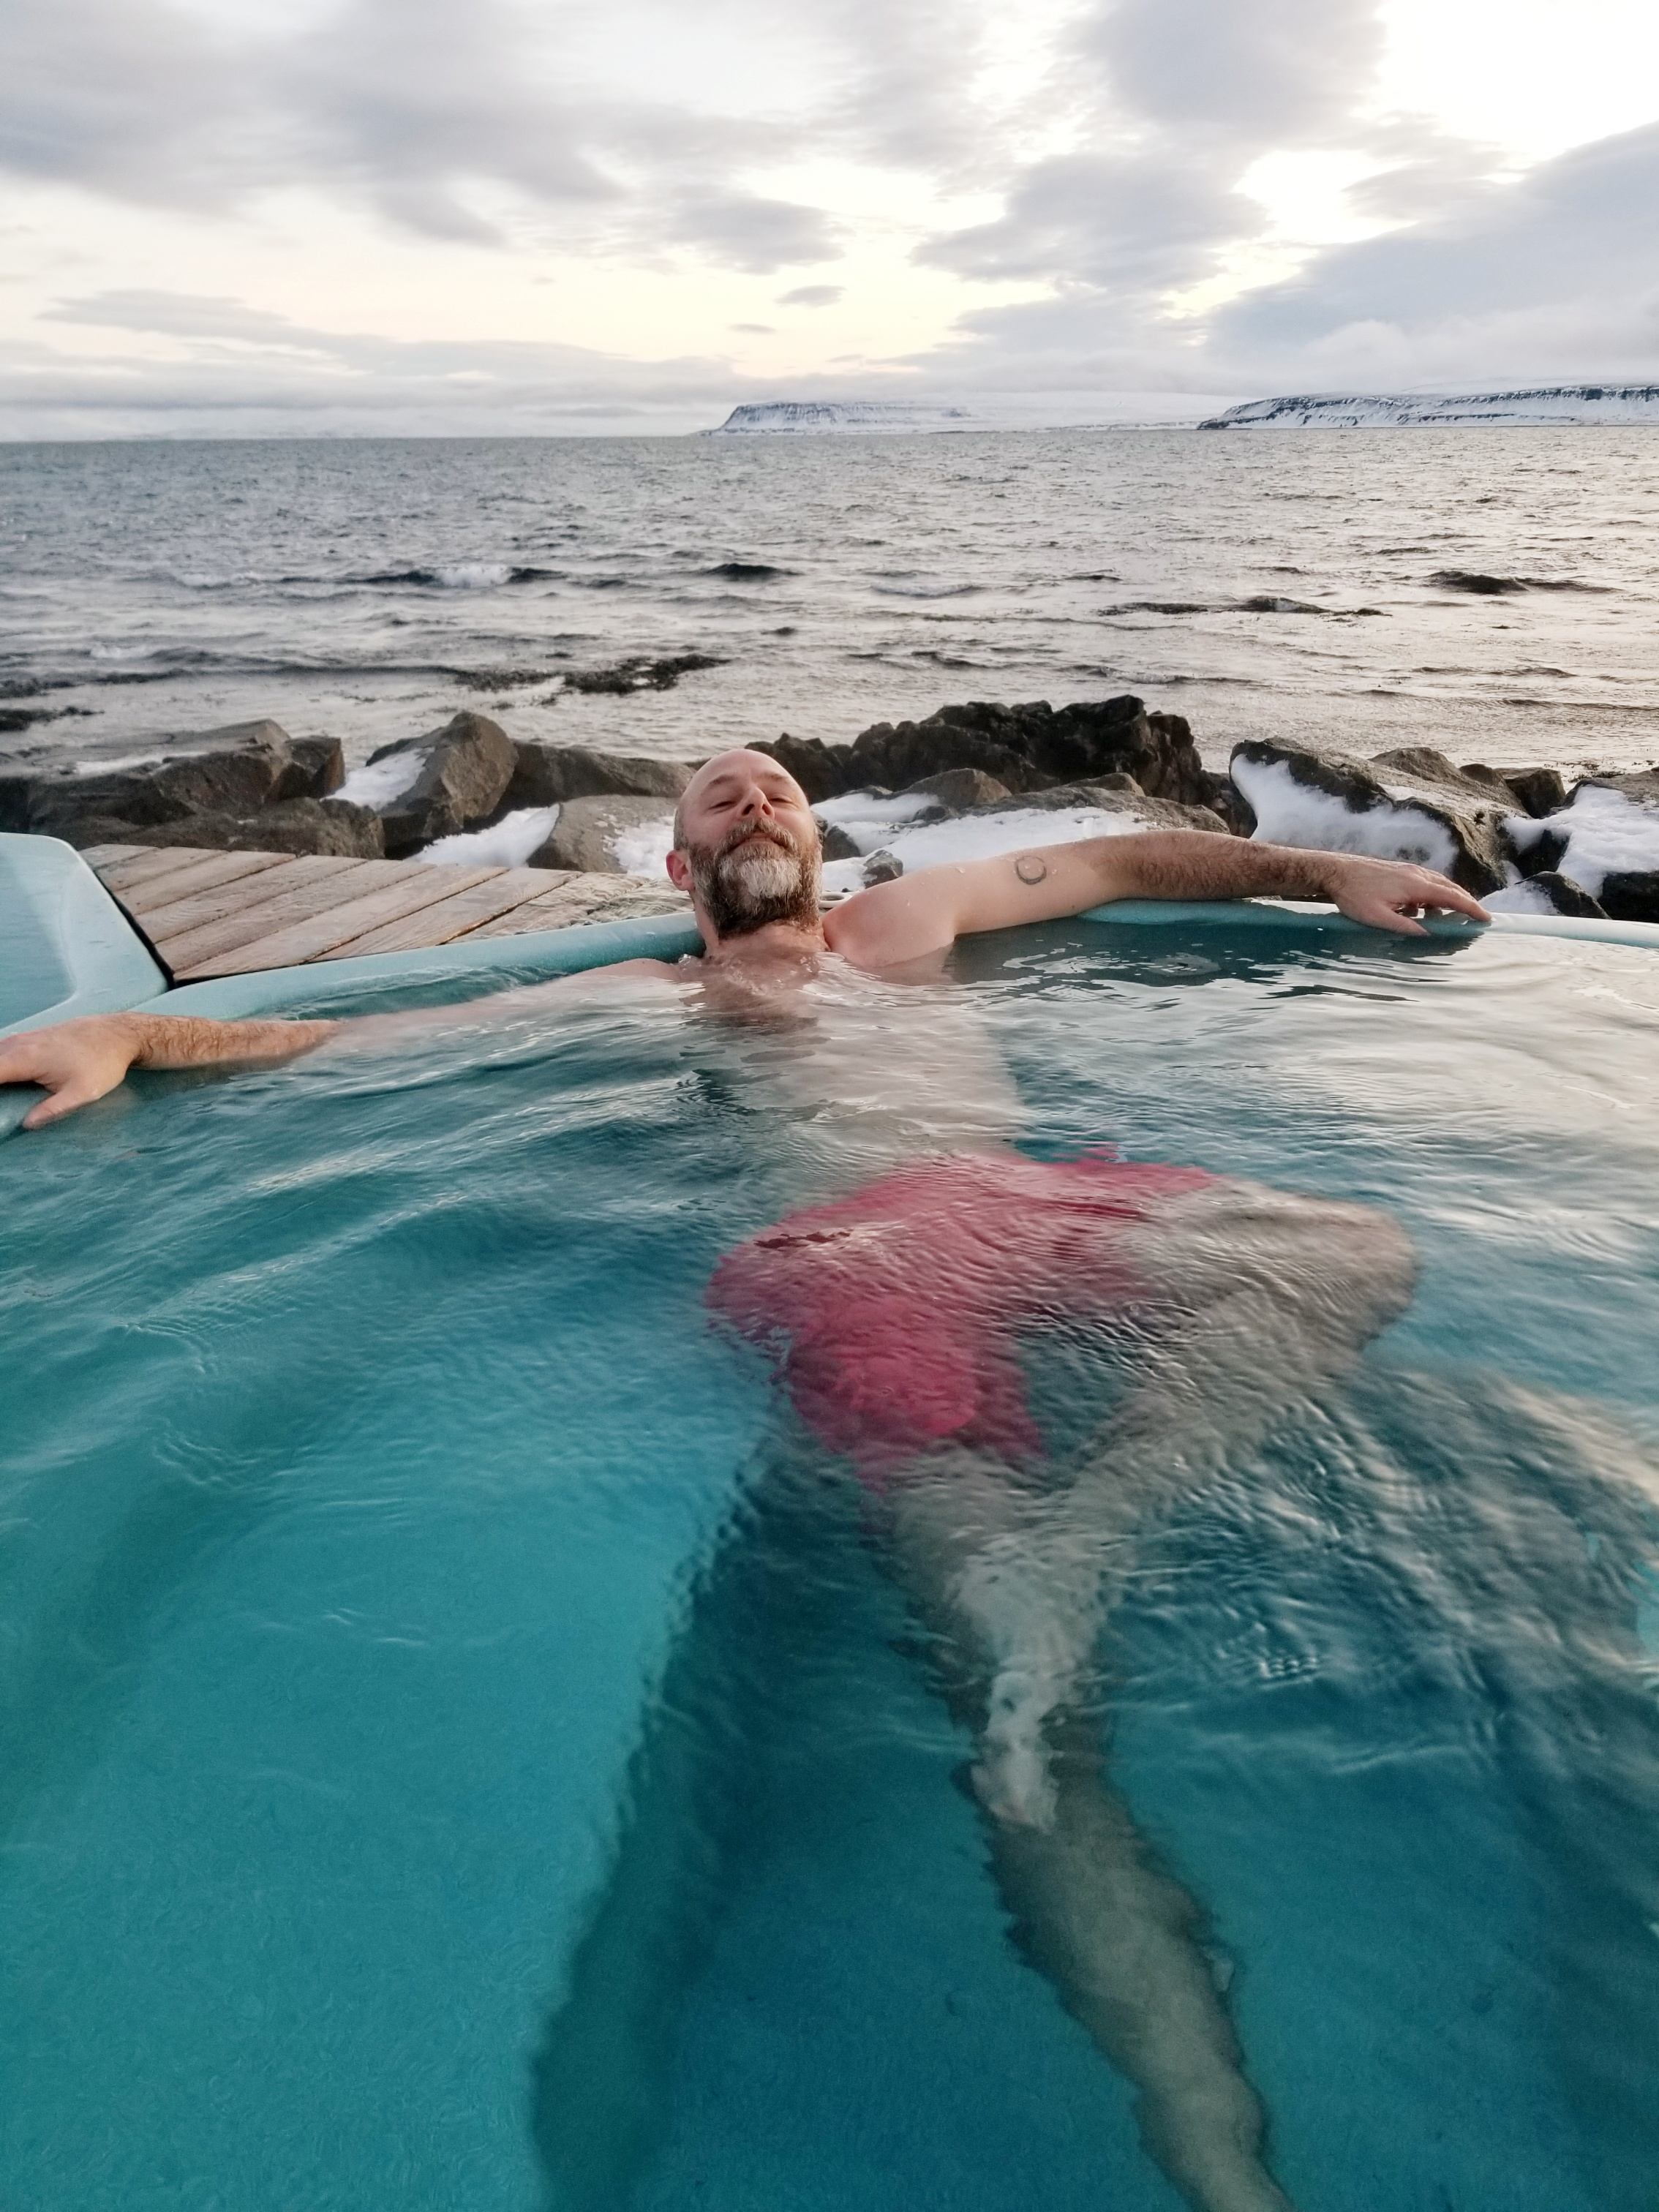 Chris, partner in crime, soaking seaside after a long day of ice installation in Drangsnes, Iceland.